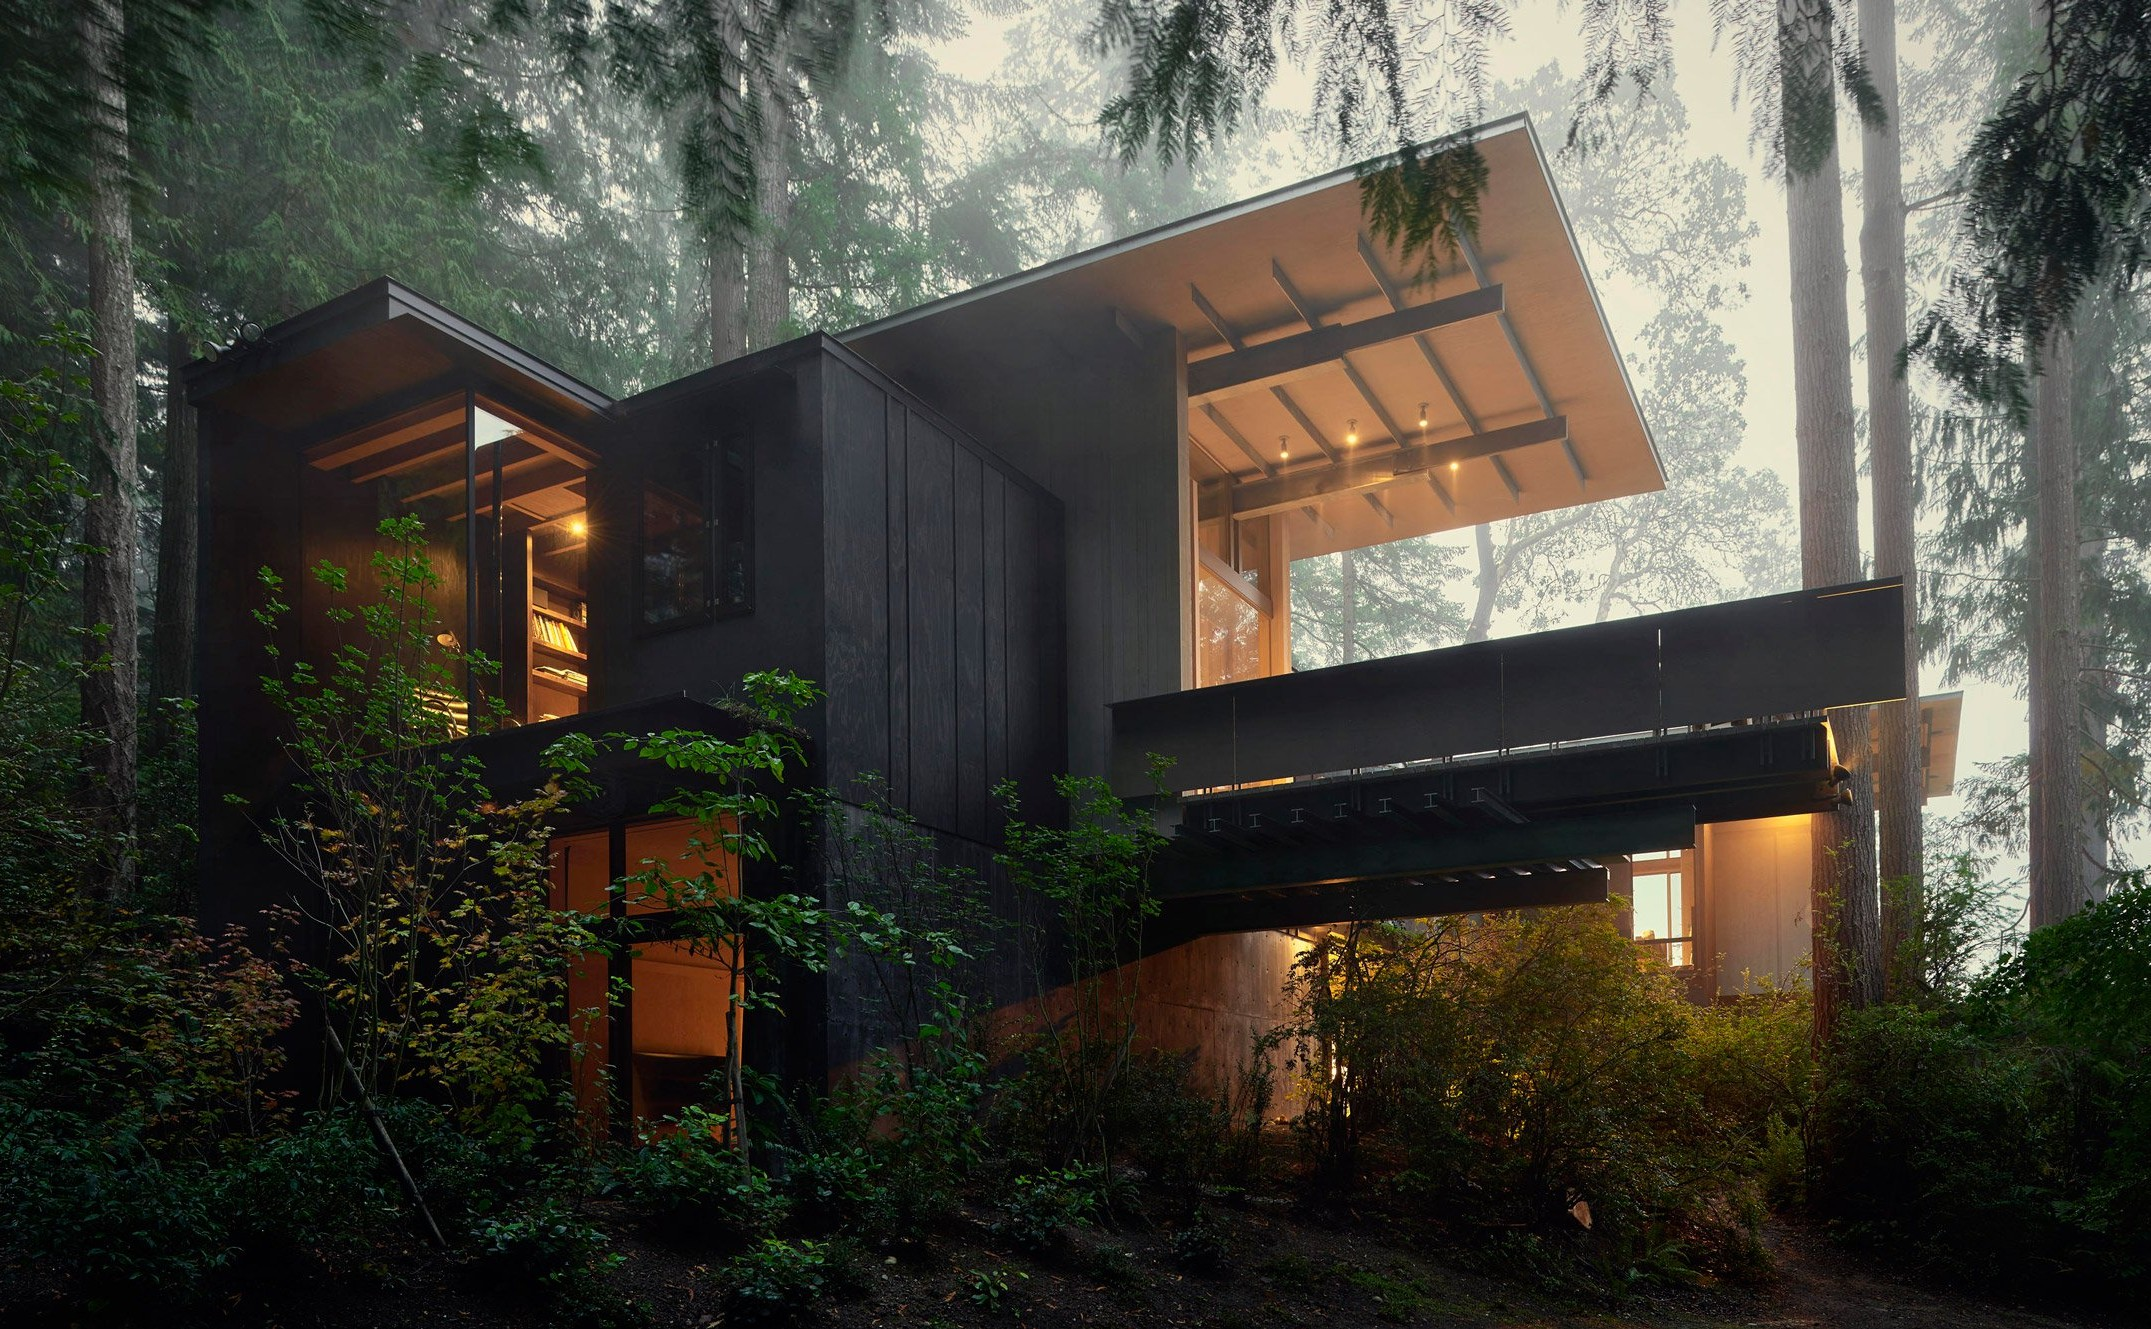 olson-cabin-jim-olson-architecture_dezeen_hero-2